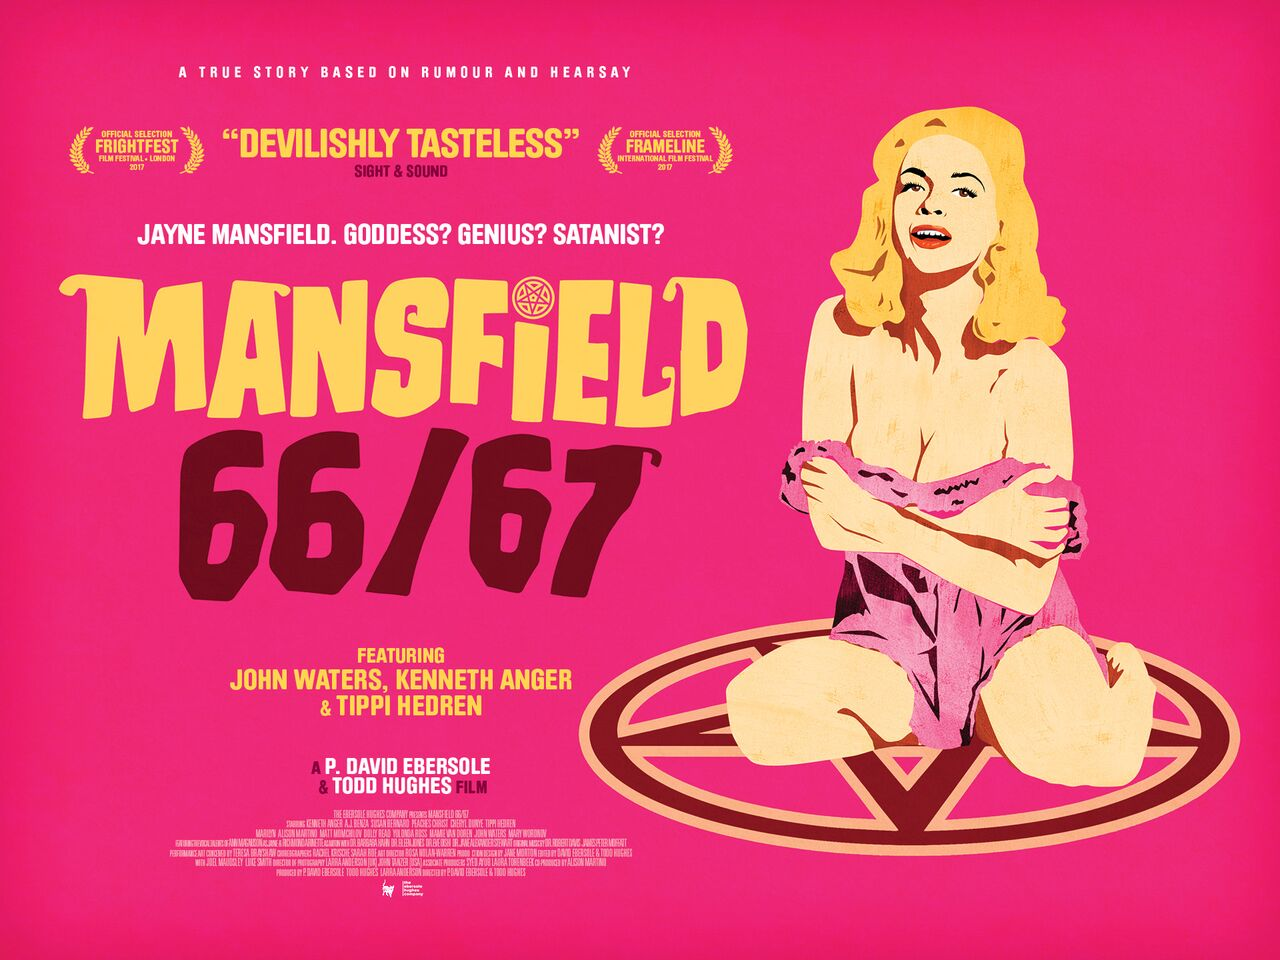 Mansfield 66/67, the Jayne Mansfield story